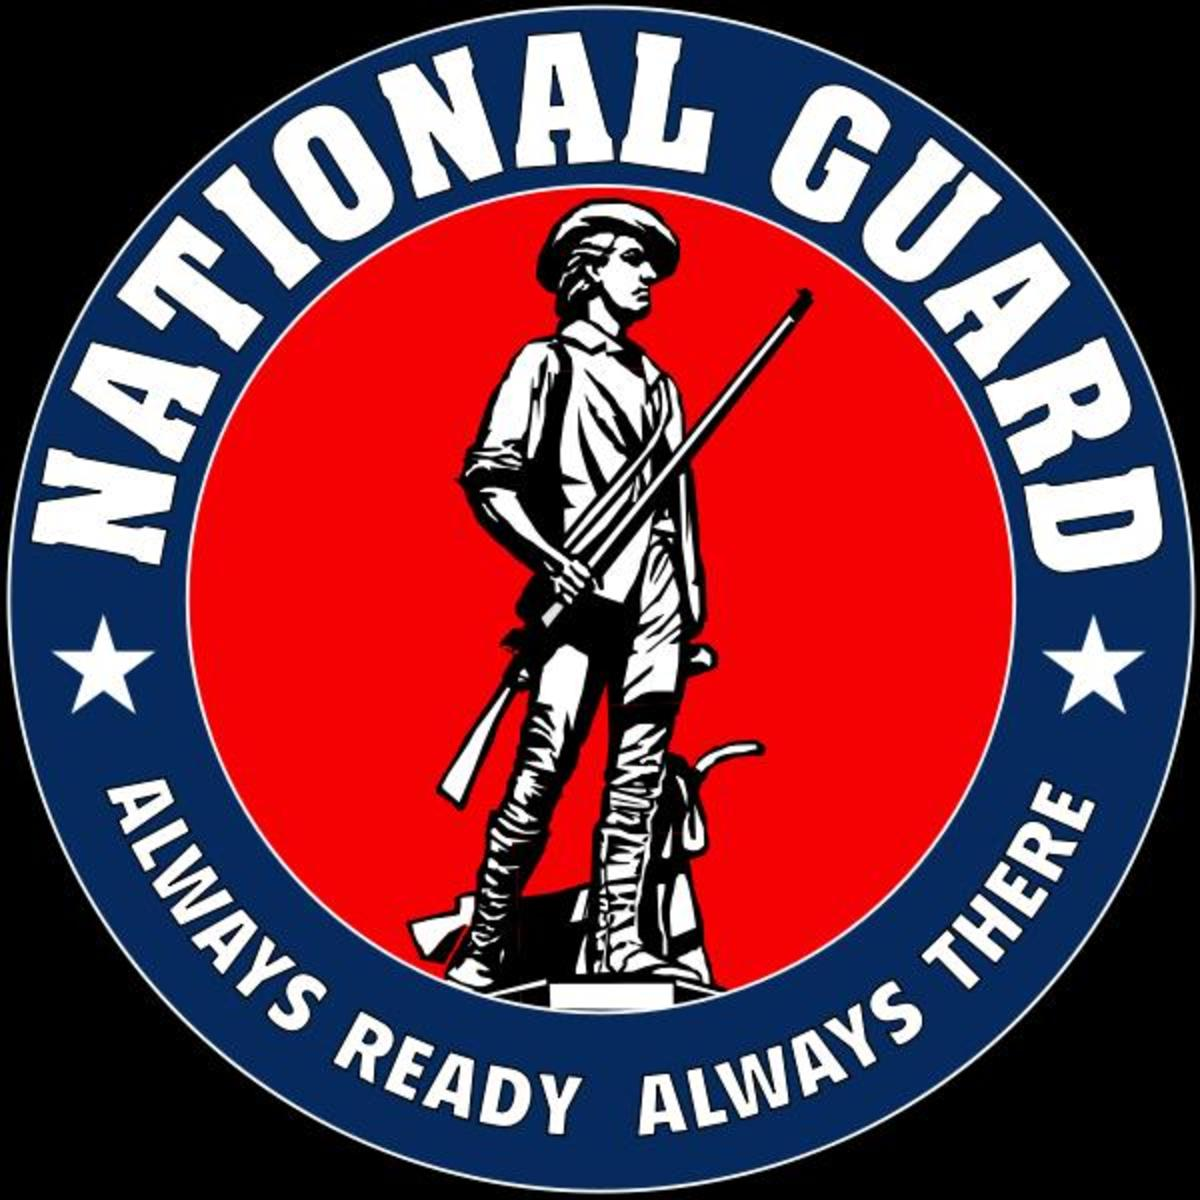 National Guard Logo (Public Domain image courtesy of WikiPedia.org  http://en.wikipedia.org/wiki/File:National_Guard_Logo.svg)